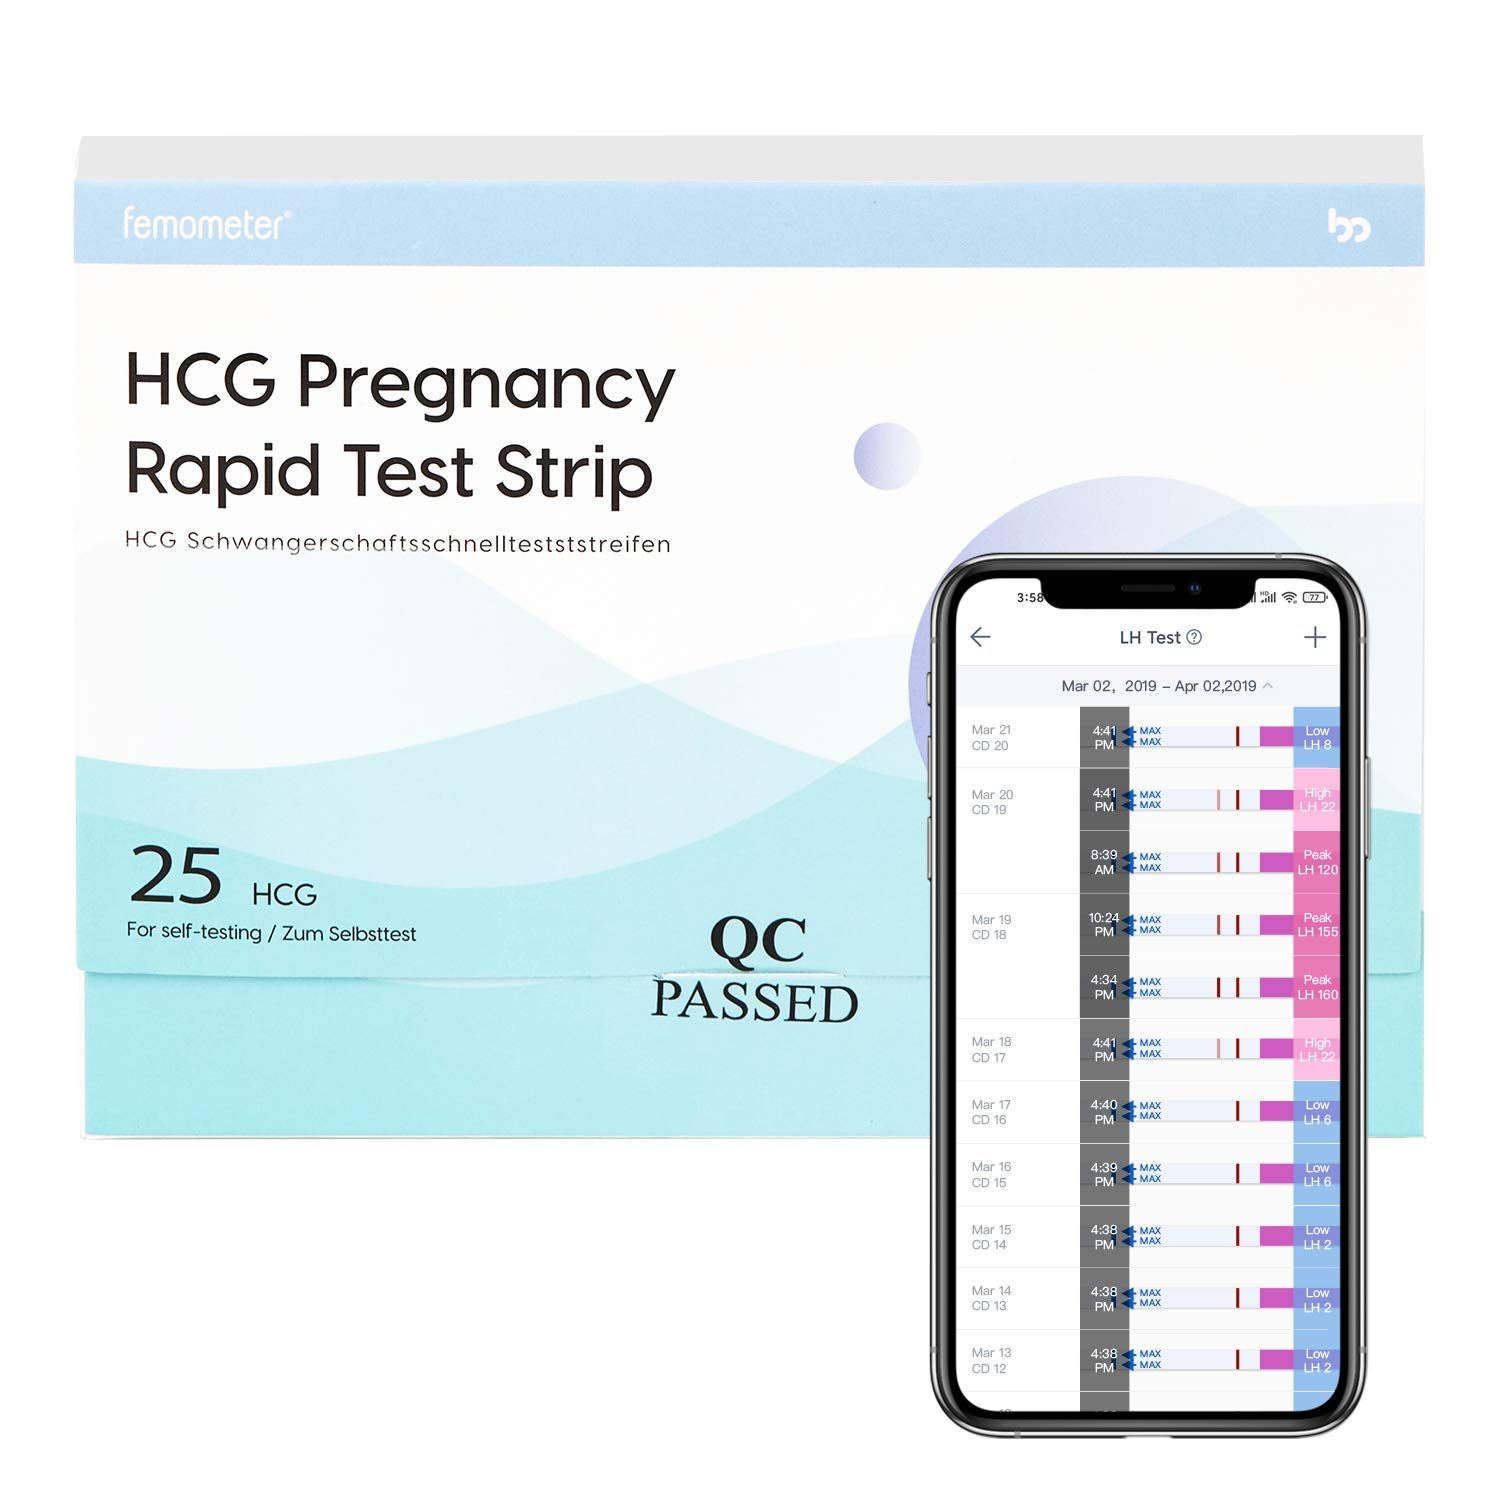 Pregnancy Tests 5 Counts Femometer HCG Pregnancy Rapid Test Strips Early Detection Pregnancy Tests Kit 25 MIU//ml with Fast and Accurate Results